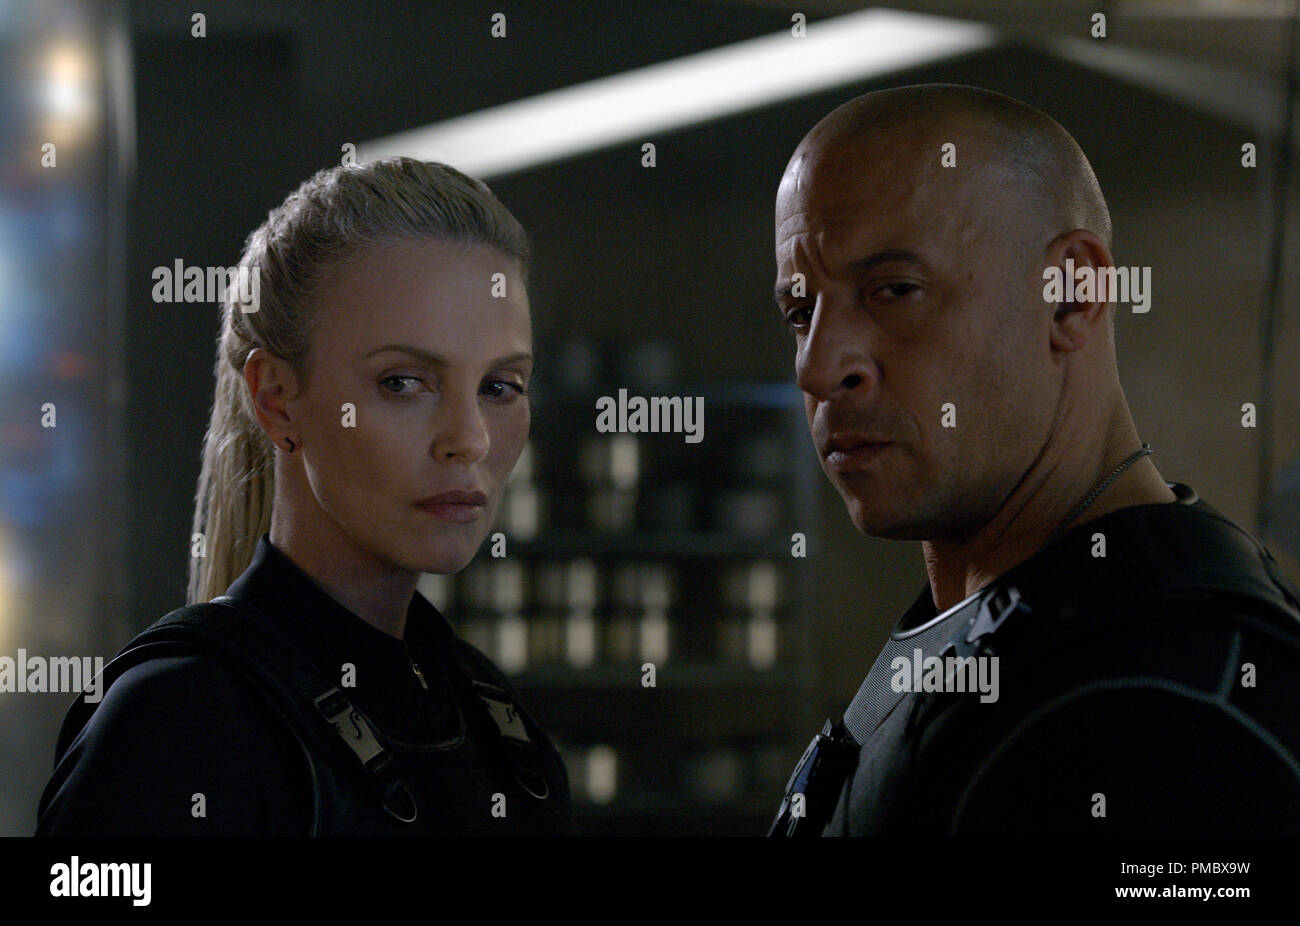 """Cipher (CHARLIZE THERON) recruits Dom (VIN DIESEL) in """"The Fate of the Furious"""" (2017) Stock Photo"""